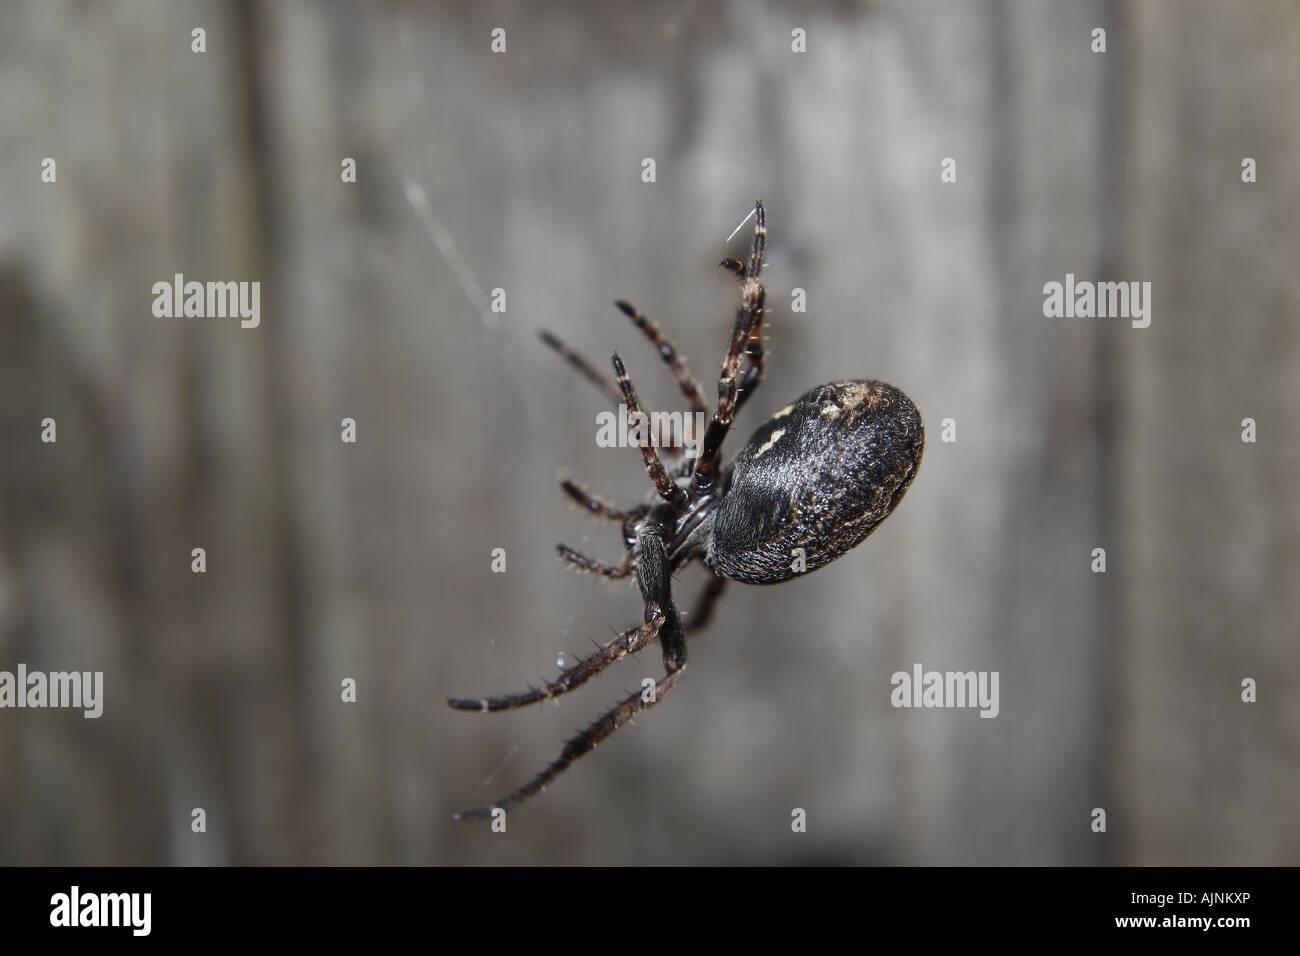 spider - Stock Image